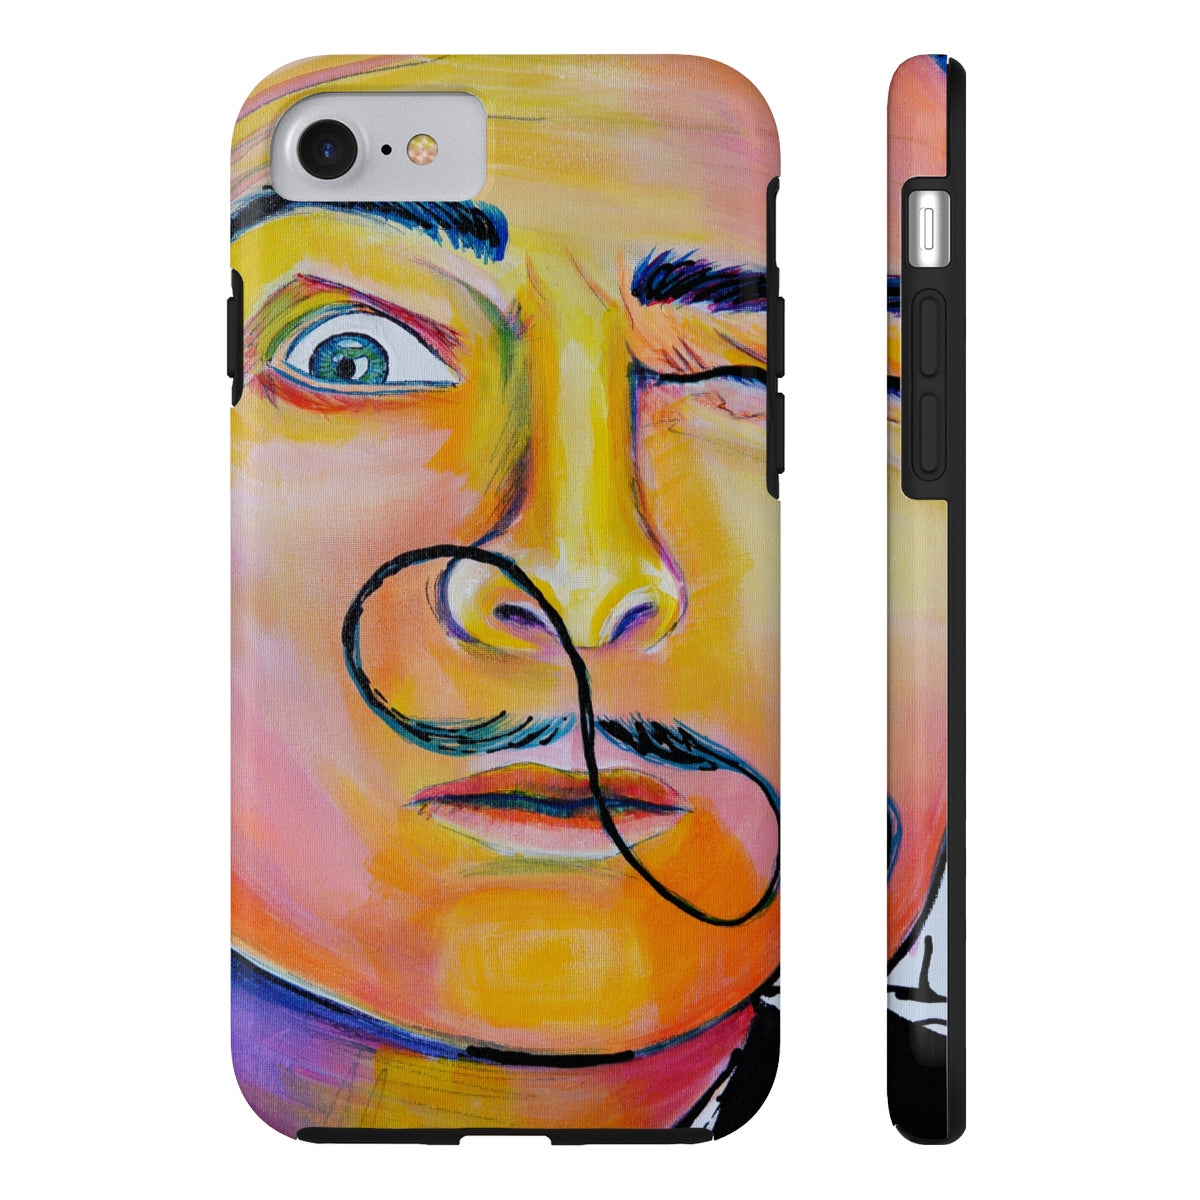 Dali 2 Tough Phone Cases